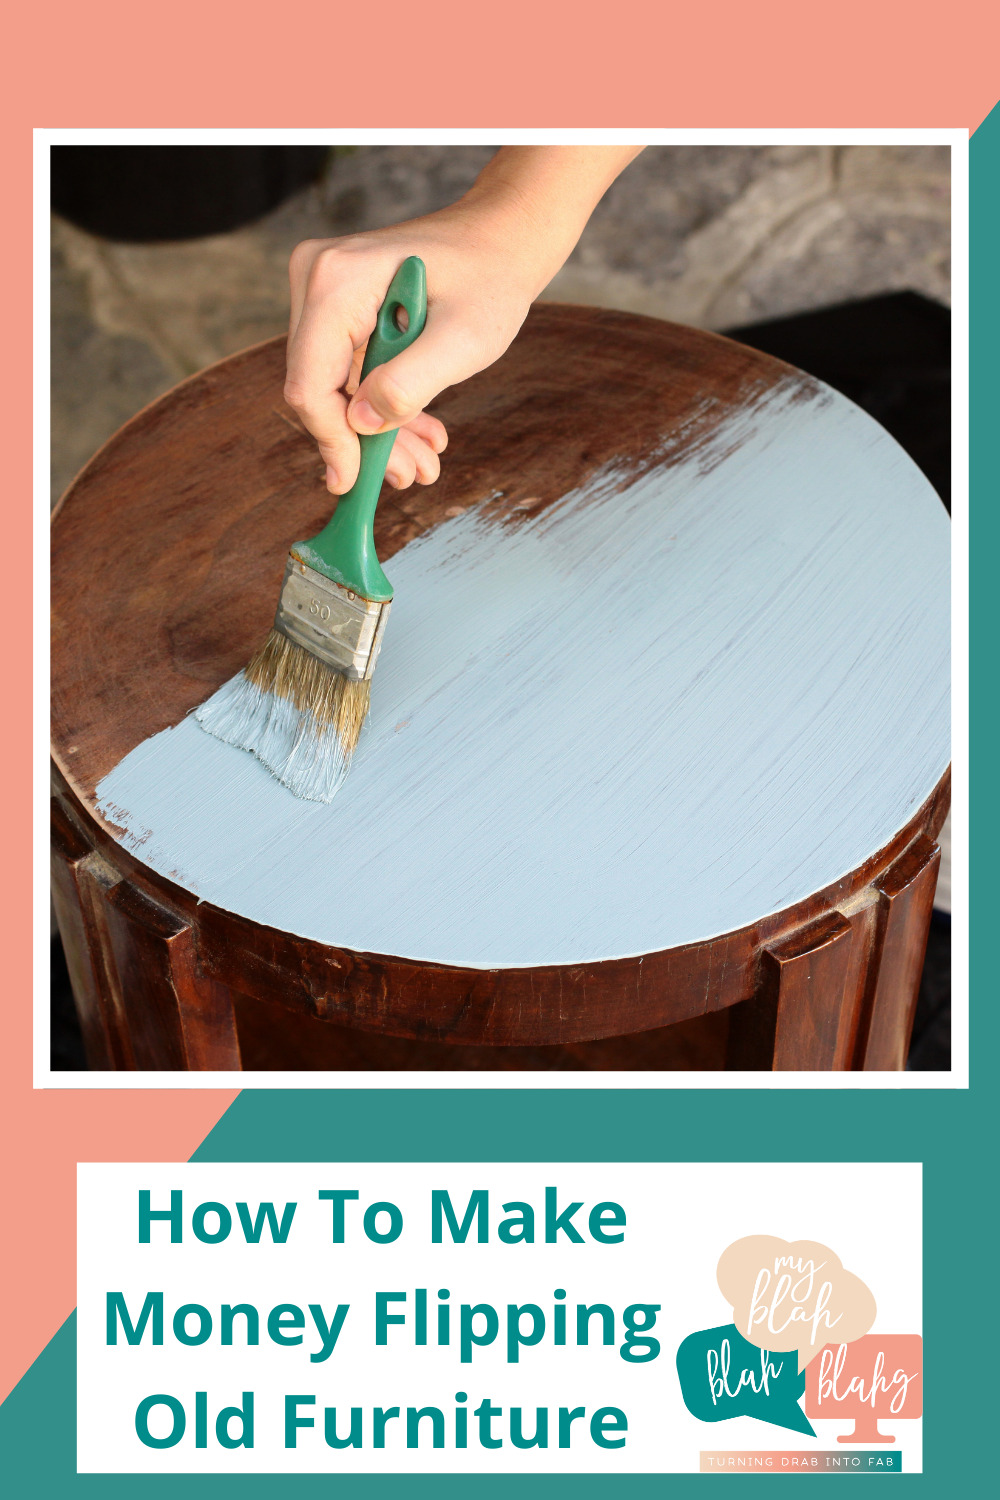 Myblahblahblahg.com has all you need from DIY projects to life hacks! Find out all of the creative ways you can earn more money! Start your own small business today flipping old furniture and selling it!